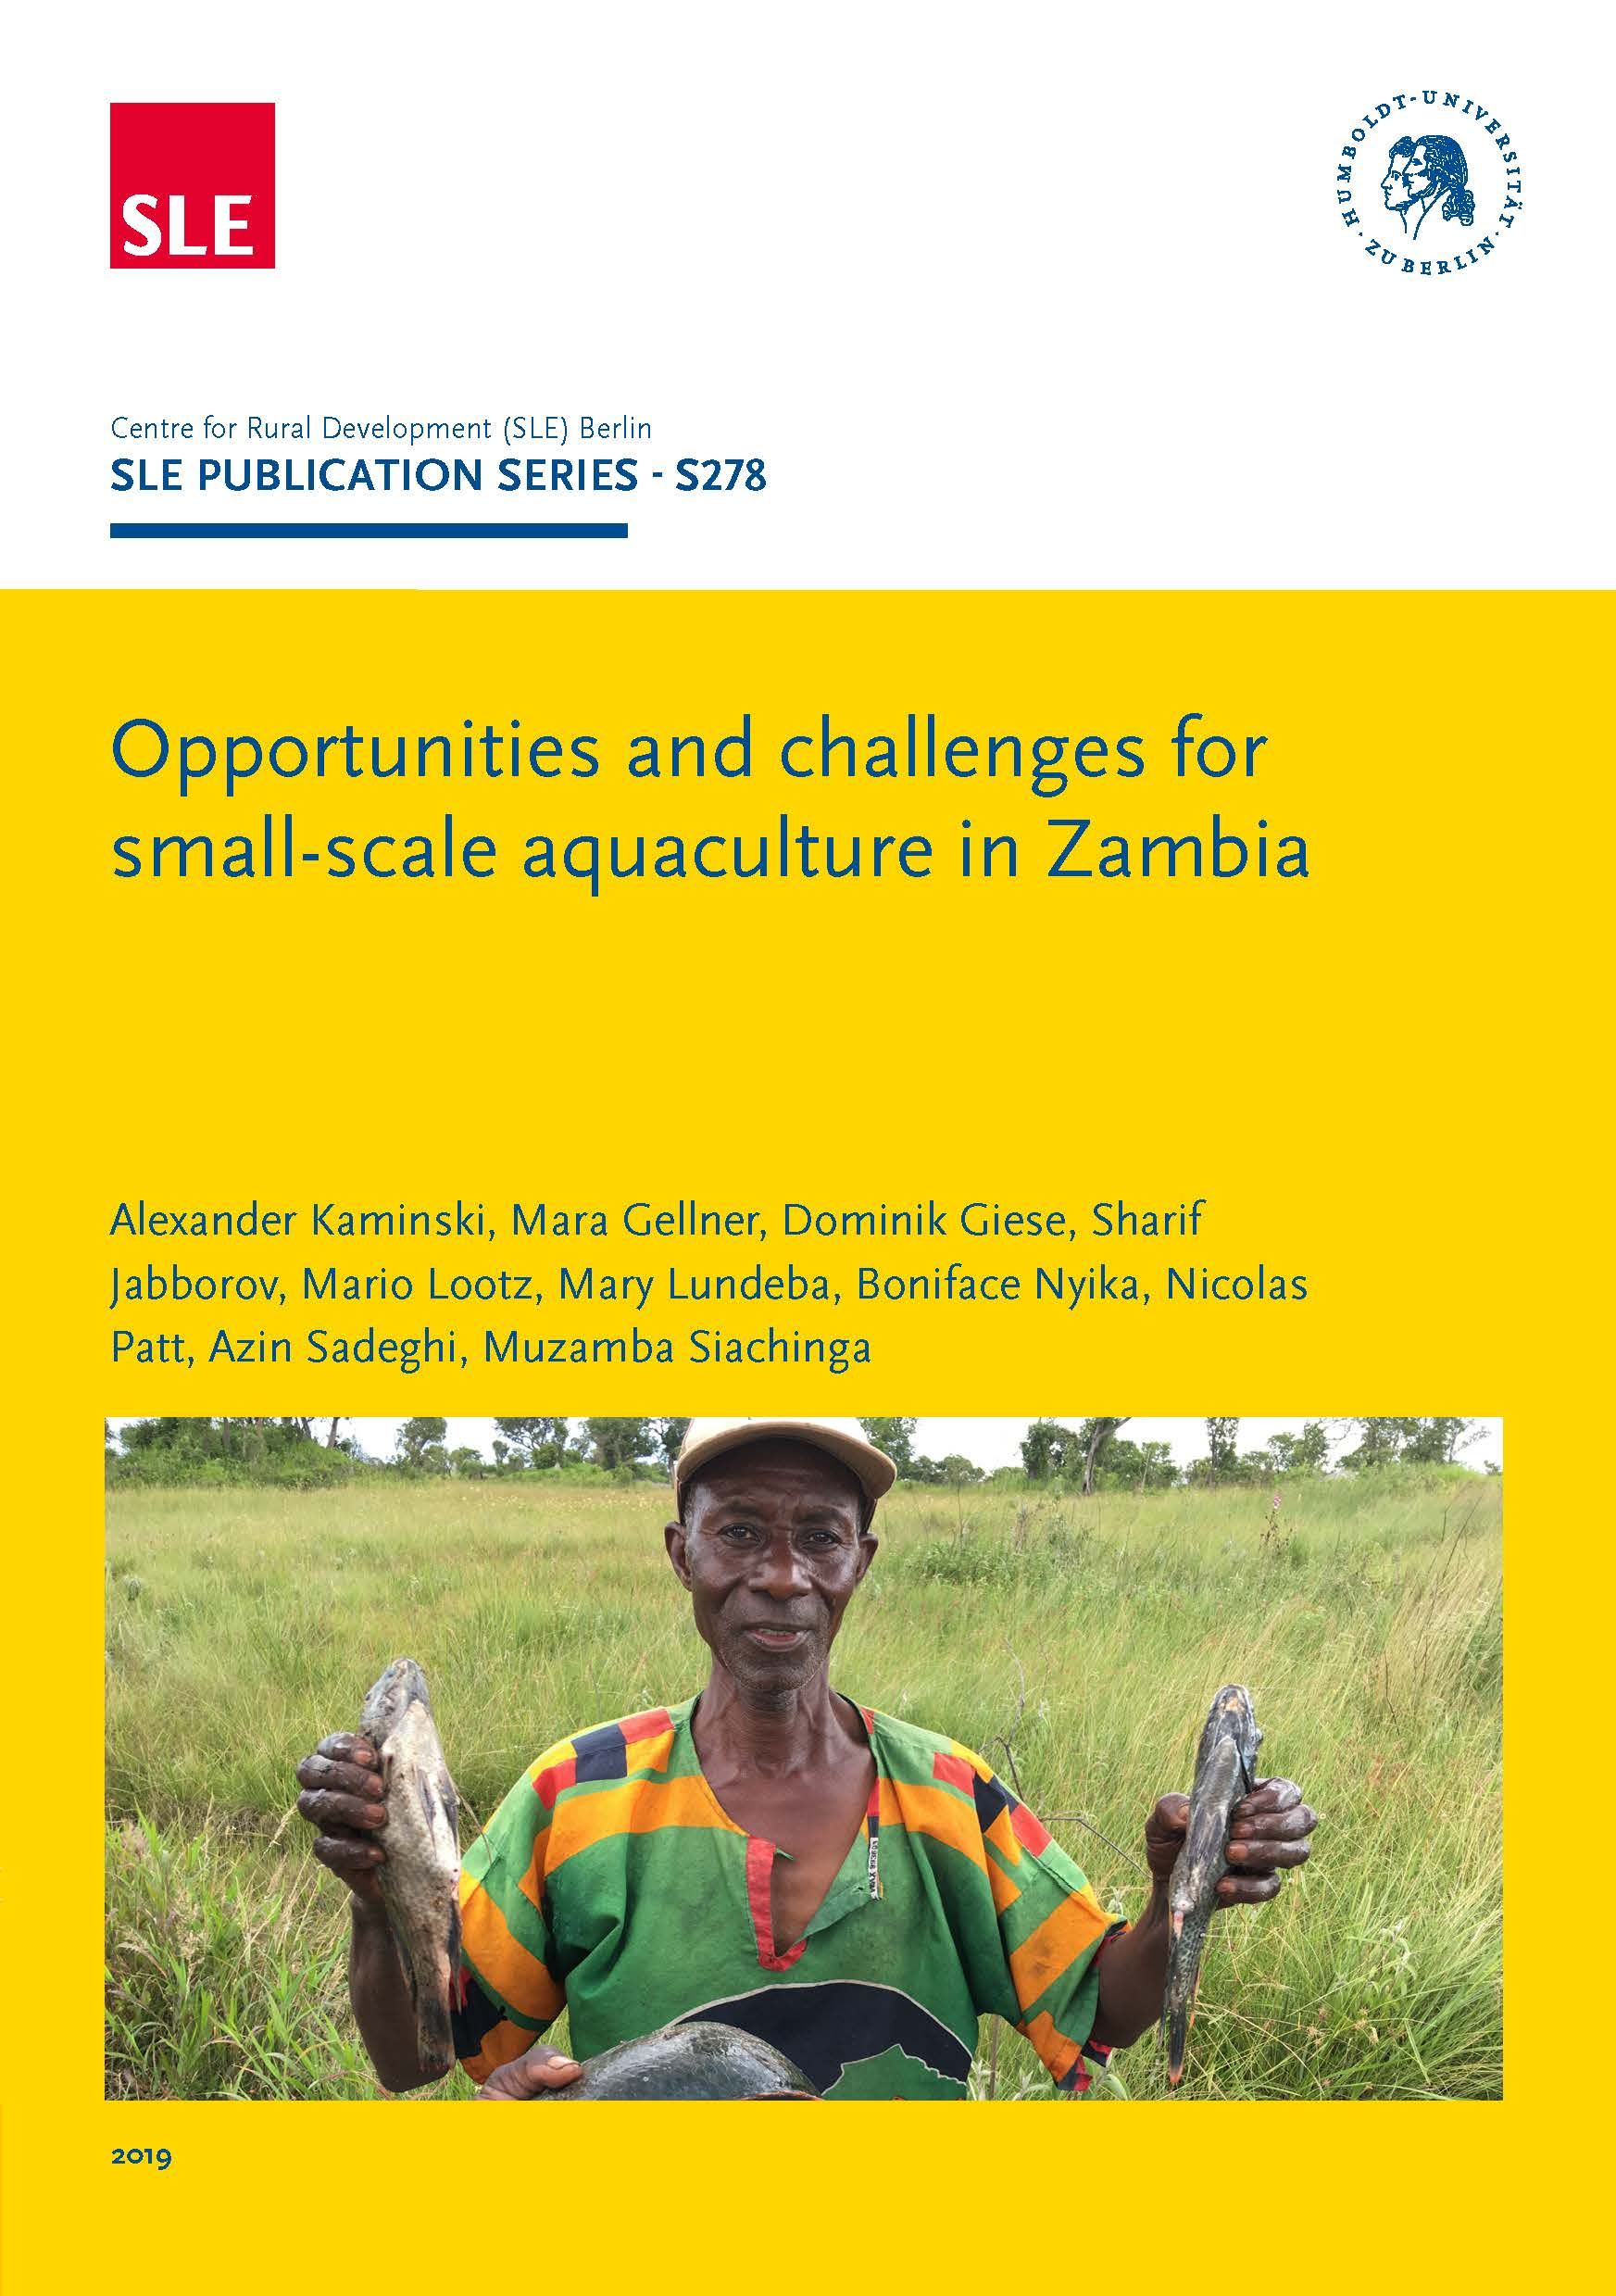 SLE 278 Opportunities and challenges for small scale aquaculture in Zambia Seite 001